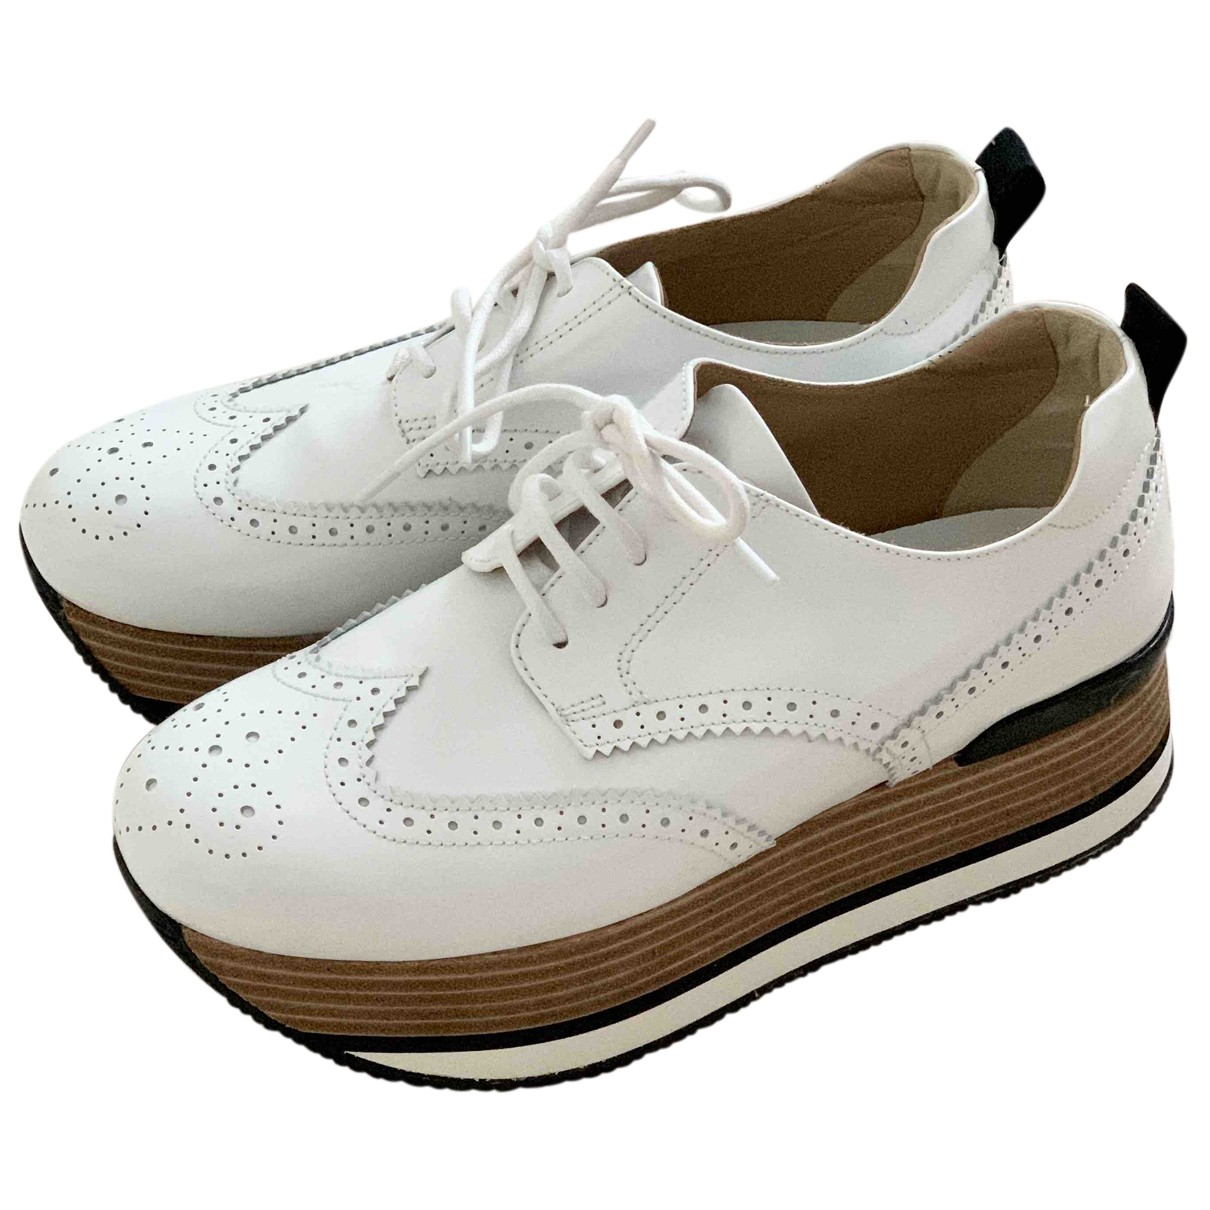 Hogan N White Patent leather Trainers for Women 38 EU